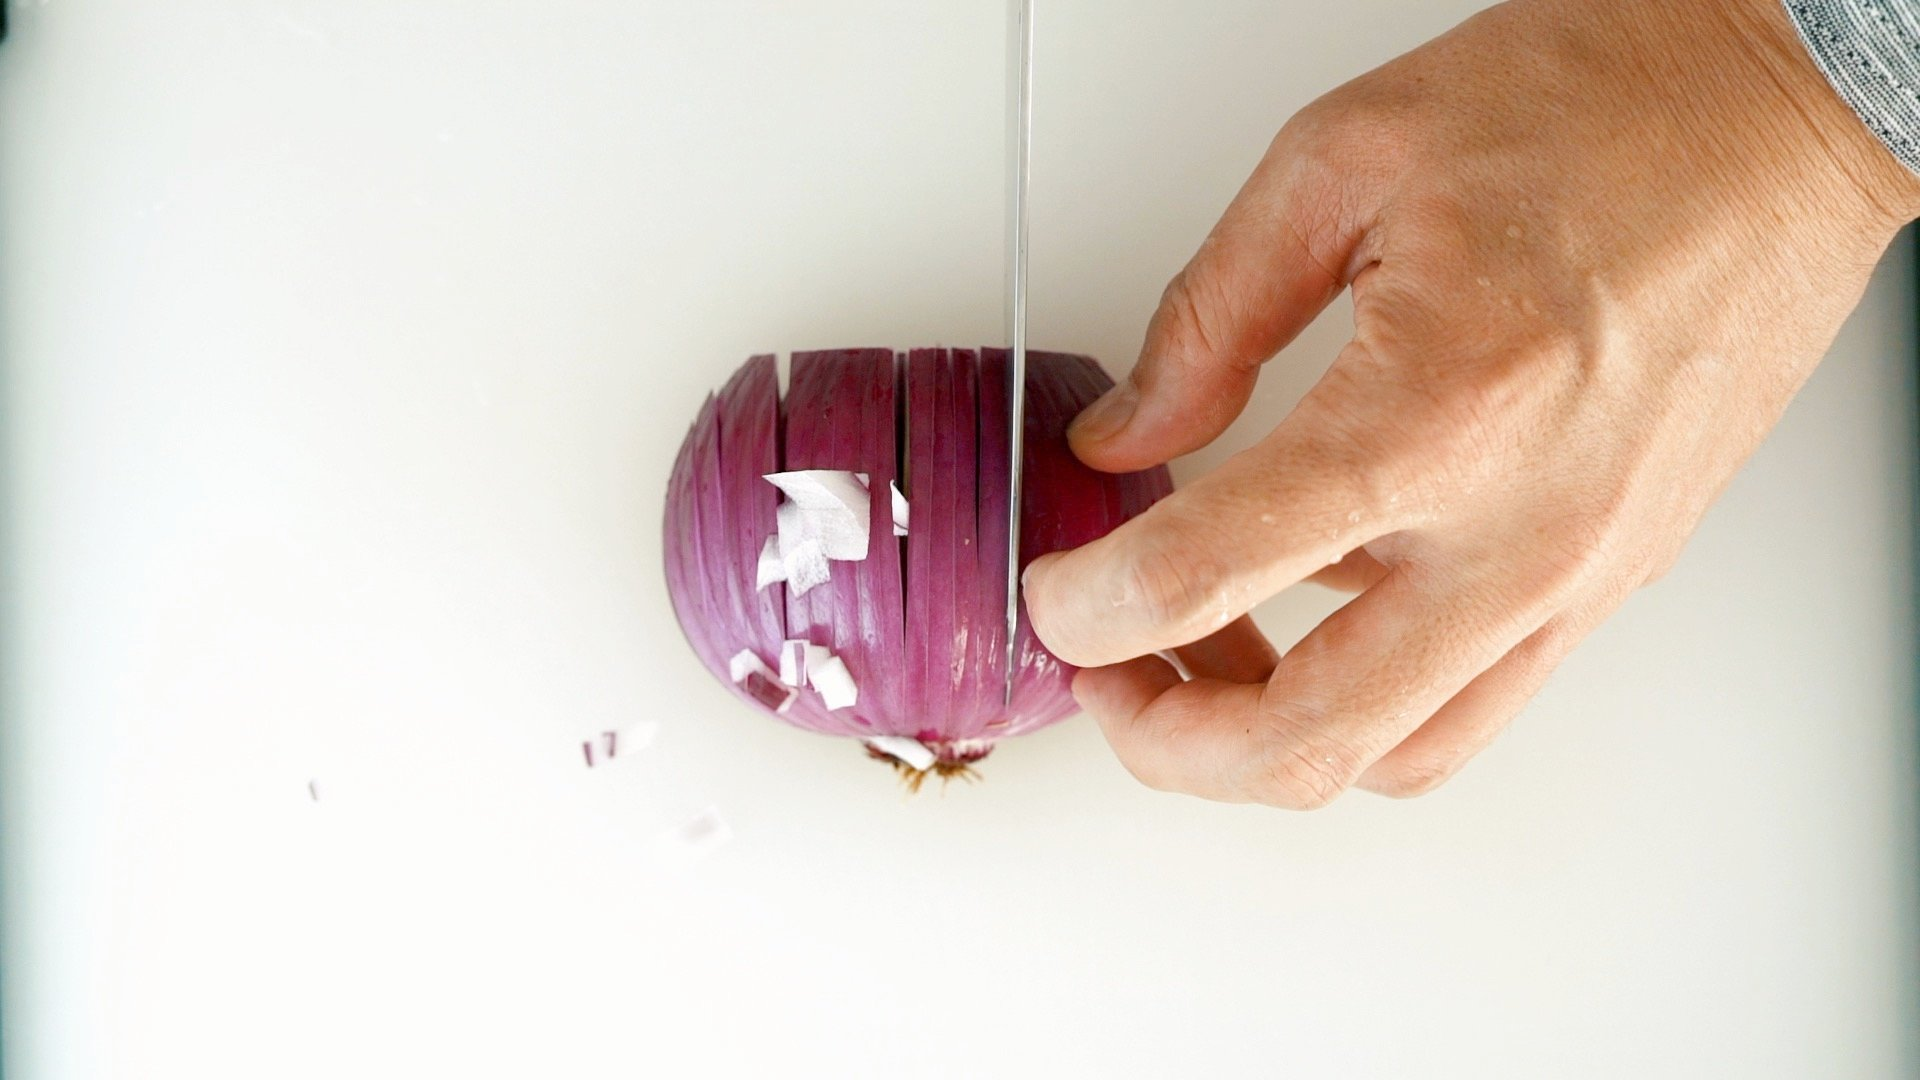 Cutting vertical slits in an onion.